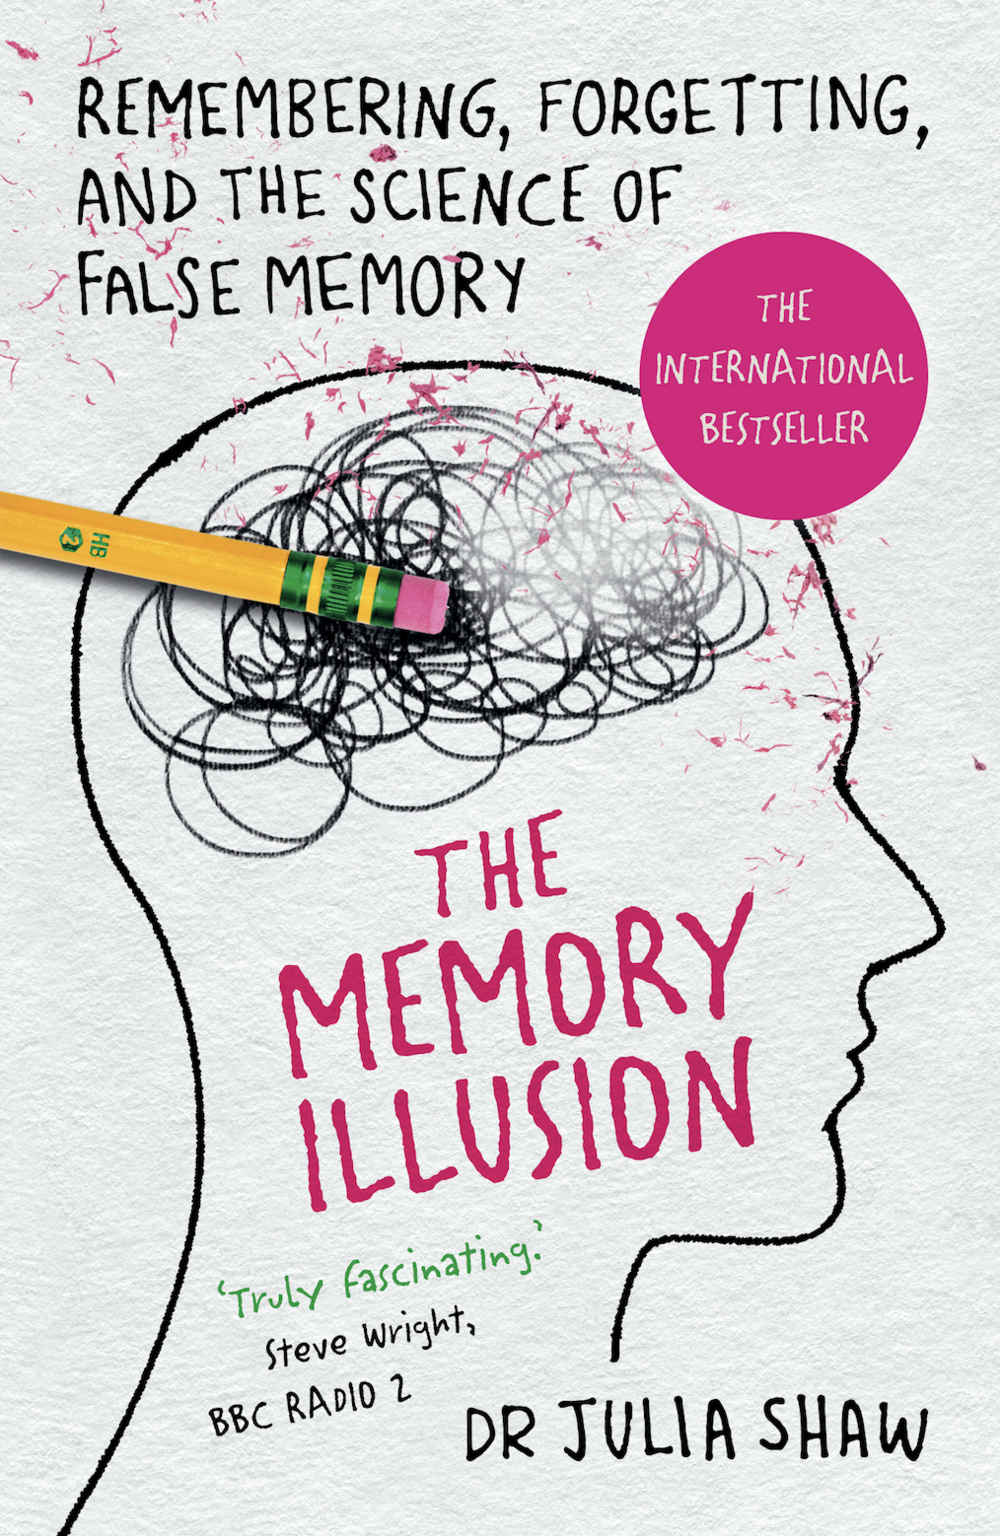 The Memory Illusion Paperback Dr Julia Shaw.png